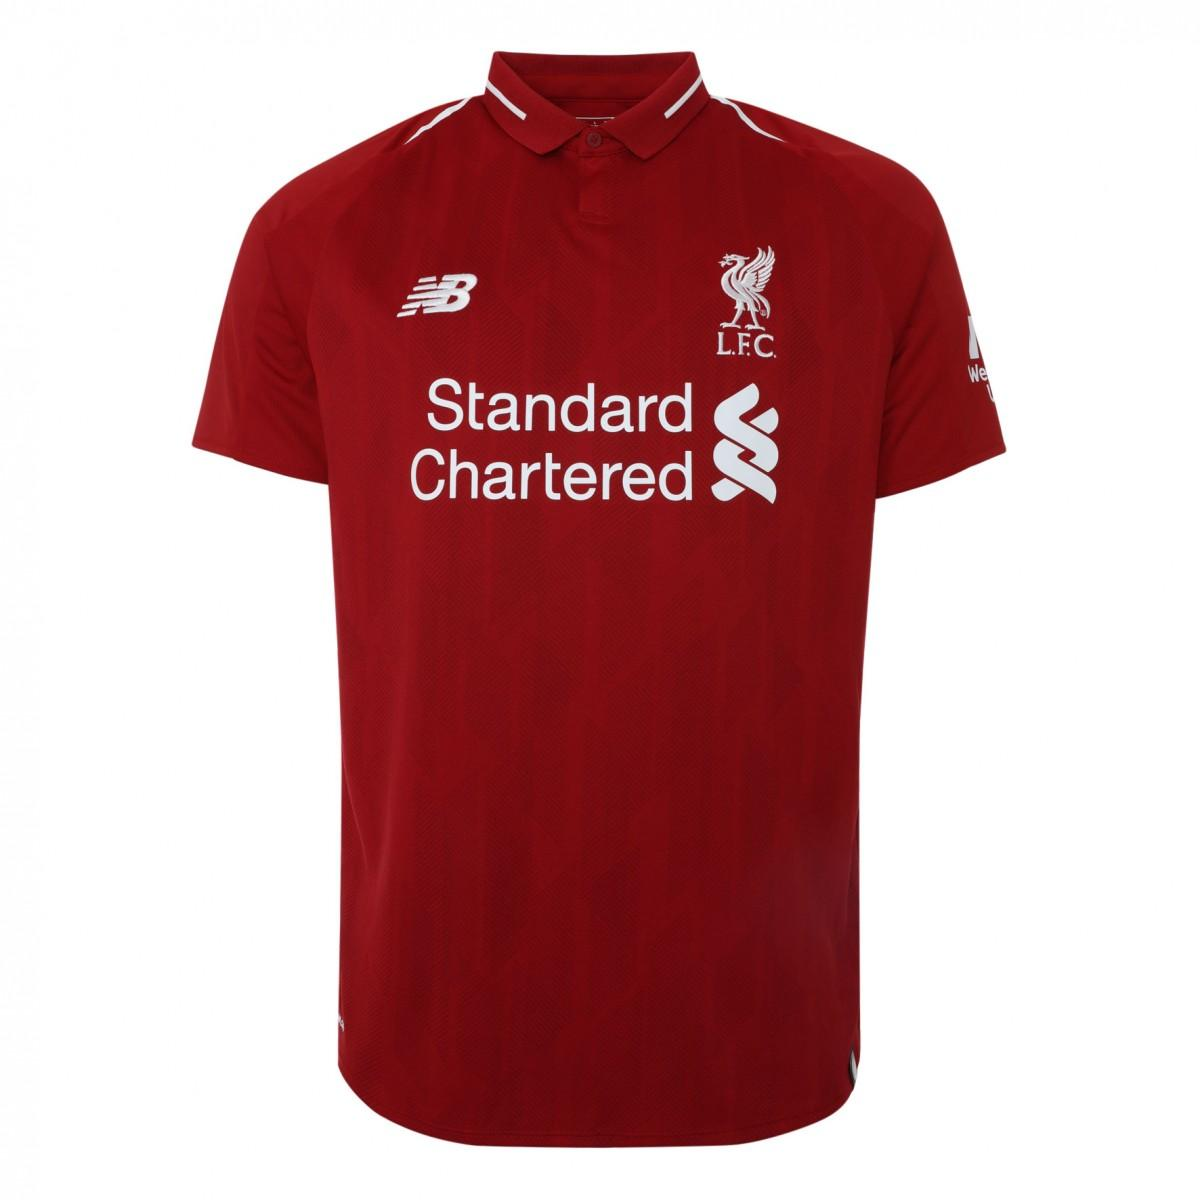 new-liverpool-home-kit-18-19-1.jpg